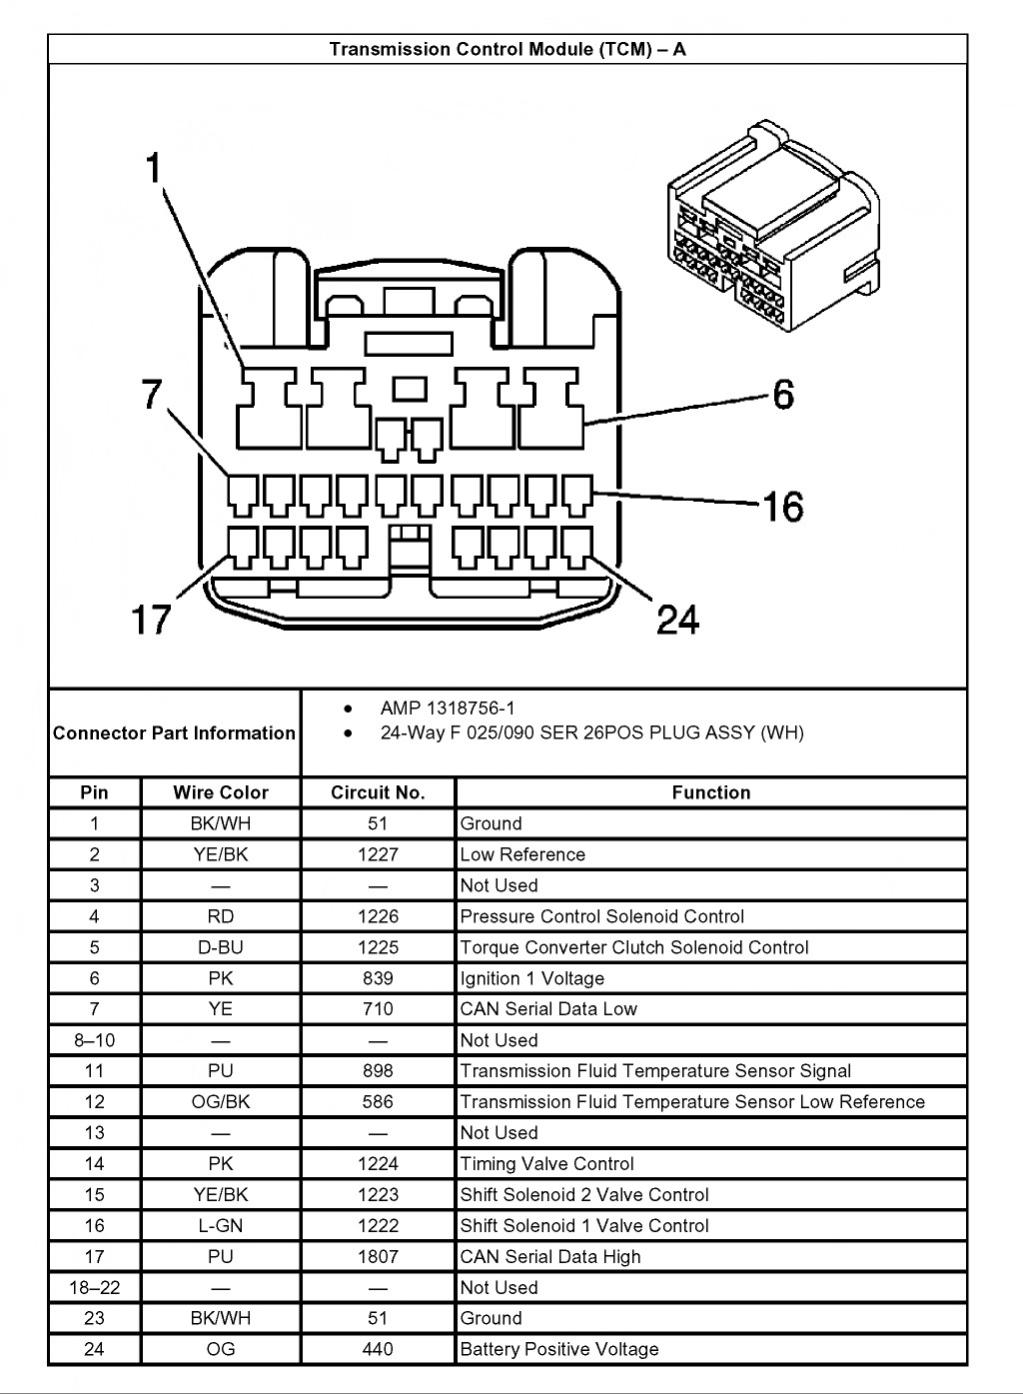 2005 aveo master connector list and diagrams - page 2 04 chevy ignition switch wiring diagram